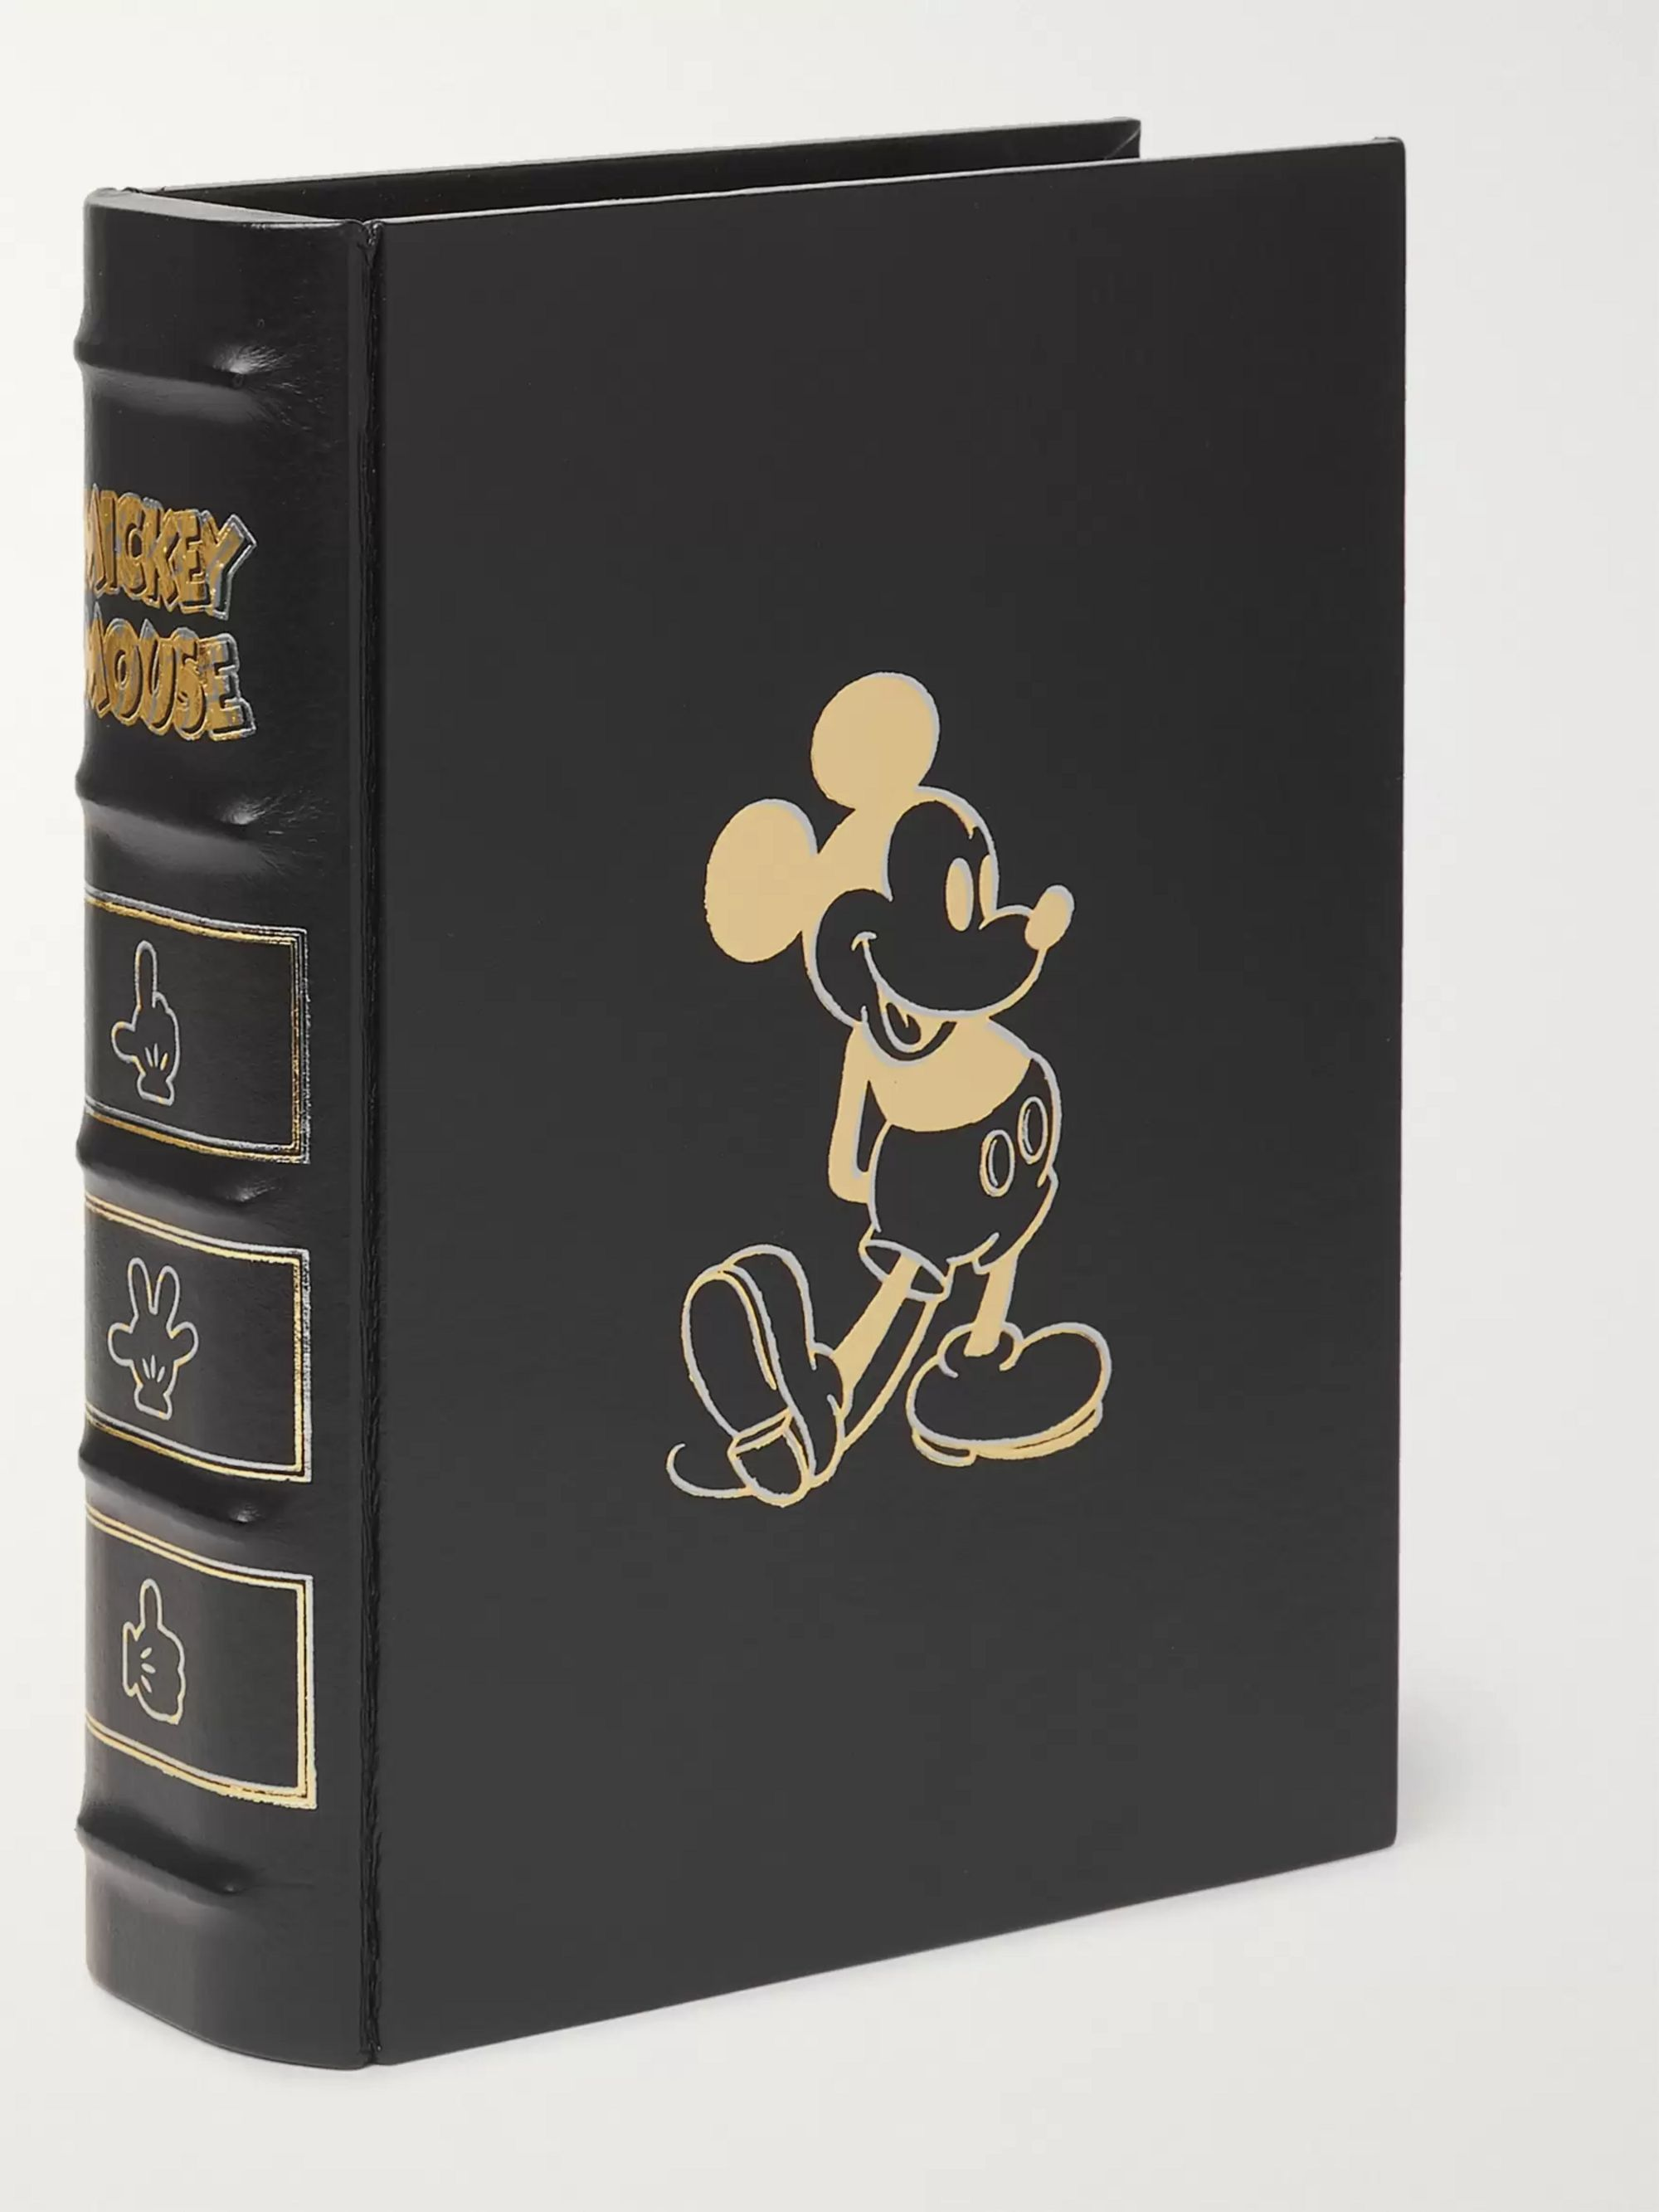 TAKAHIROMIYASHITA TheSoloist. + Mickey Mouse Foiled Leather and Gold-Tone Pouch